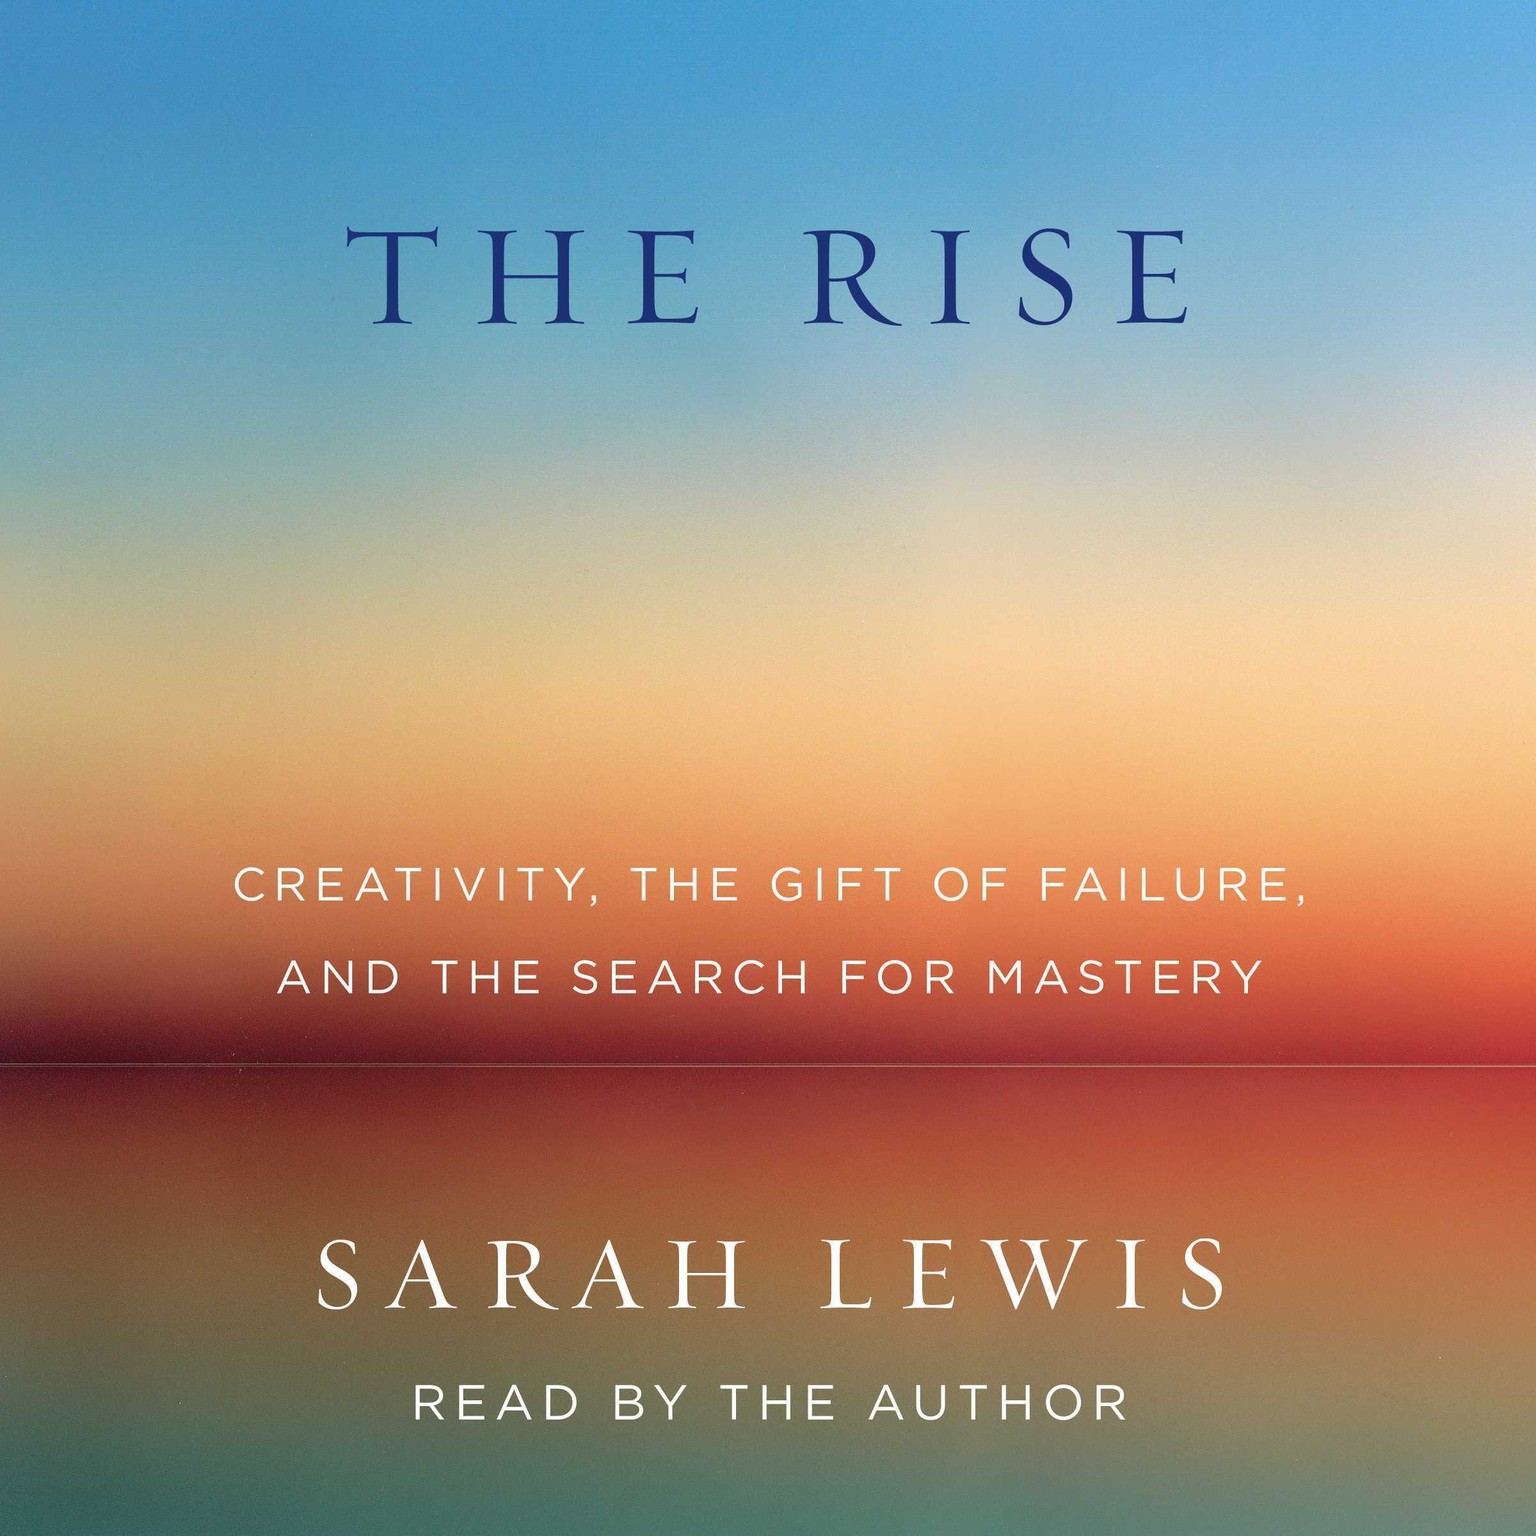 Printable The Rise: Creativity, the Gift of Failure, and the Search for Mastery Audiobook Cover Art